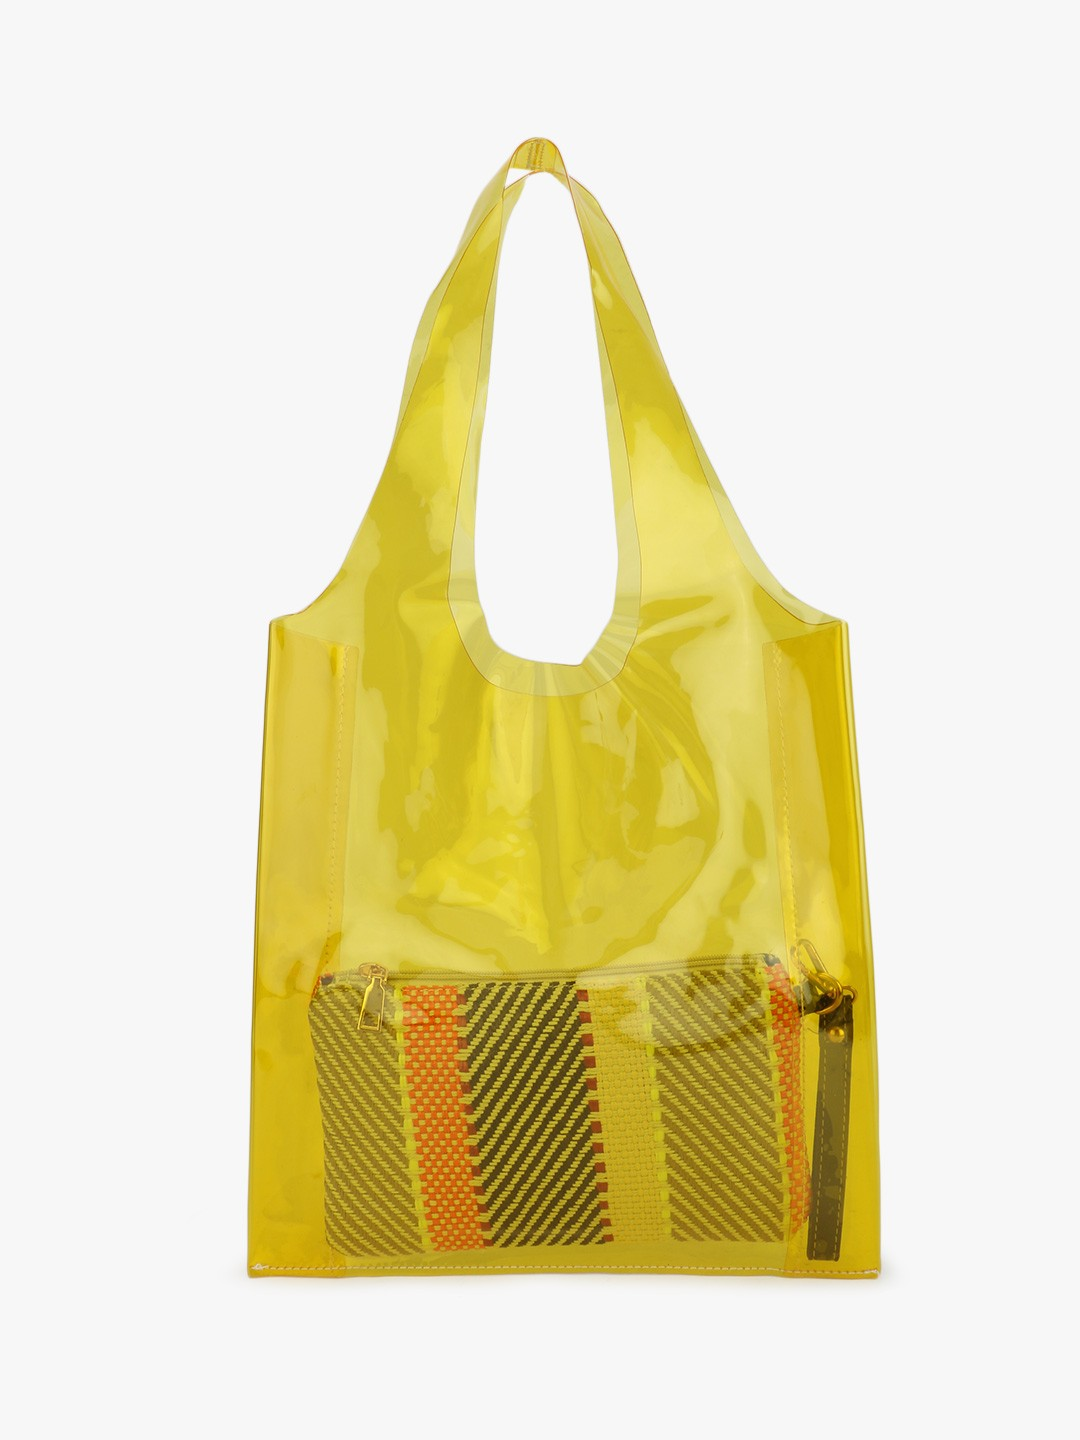 Origami Lily Yellow Clear Tote Bag With Pouch 1